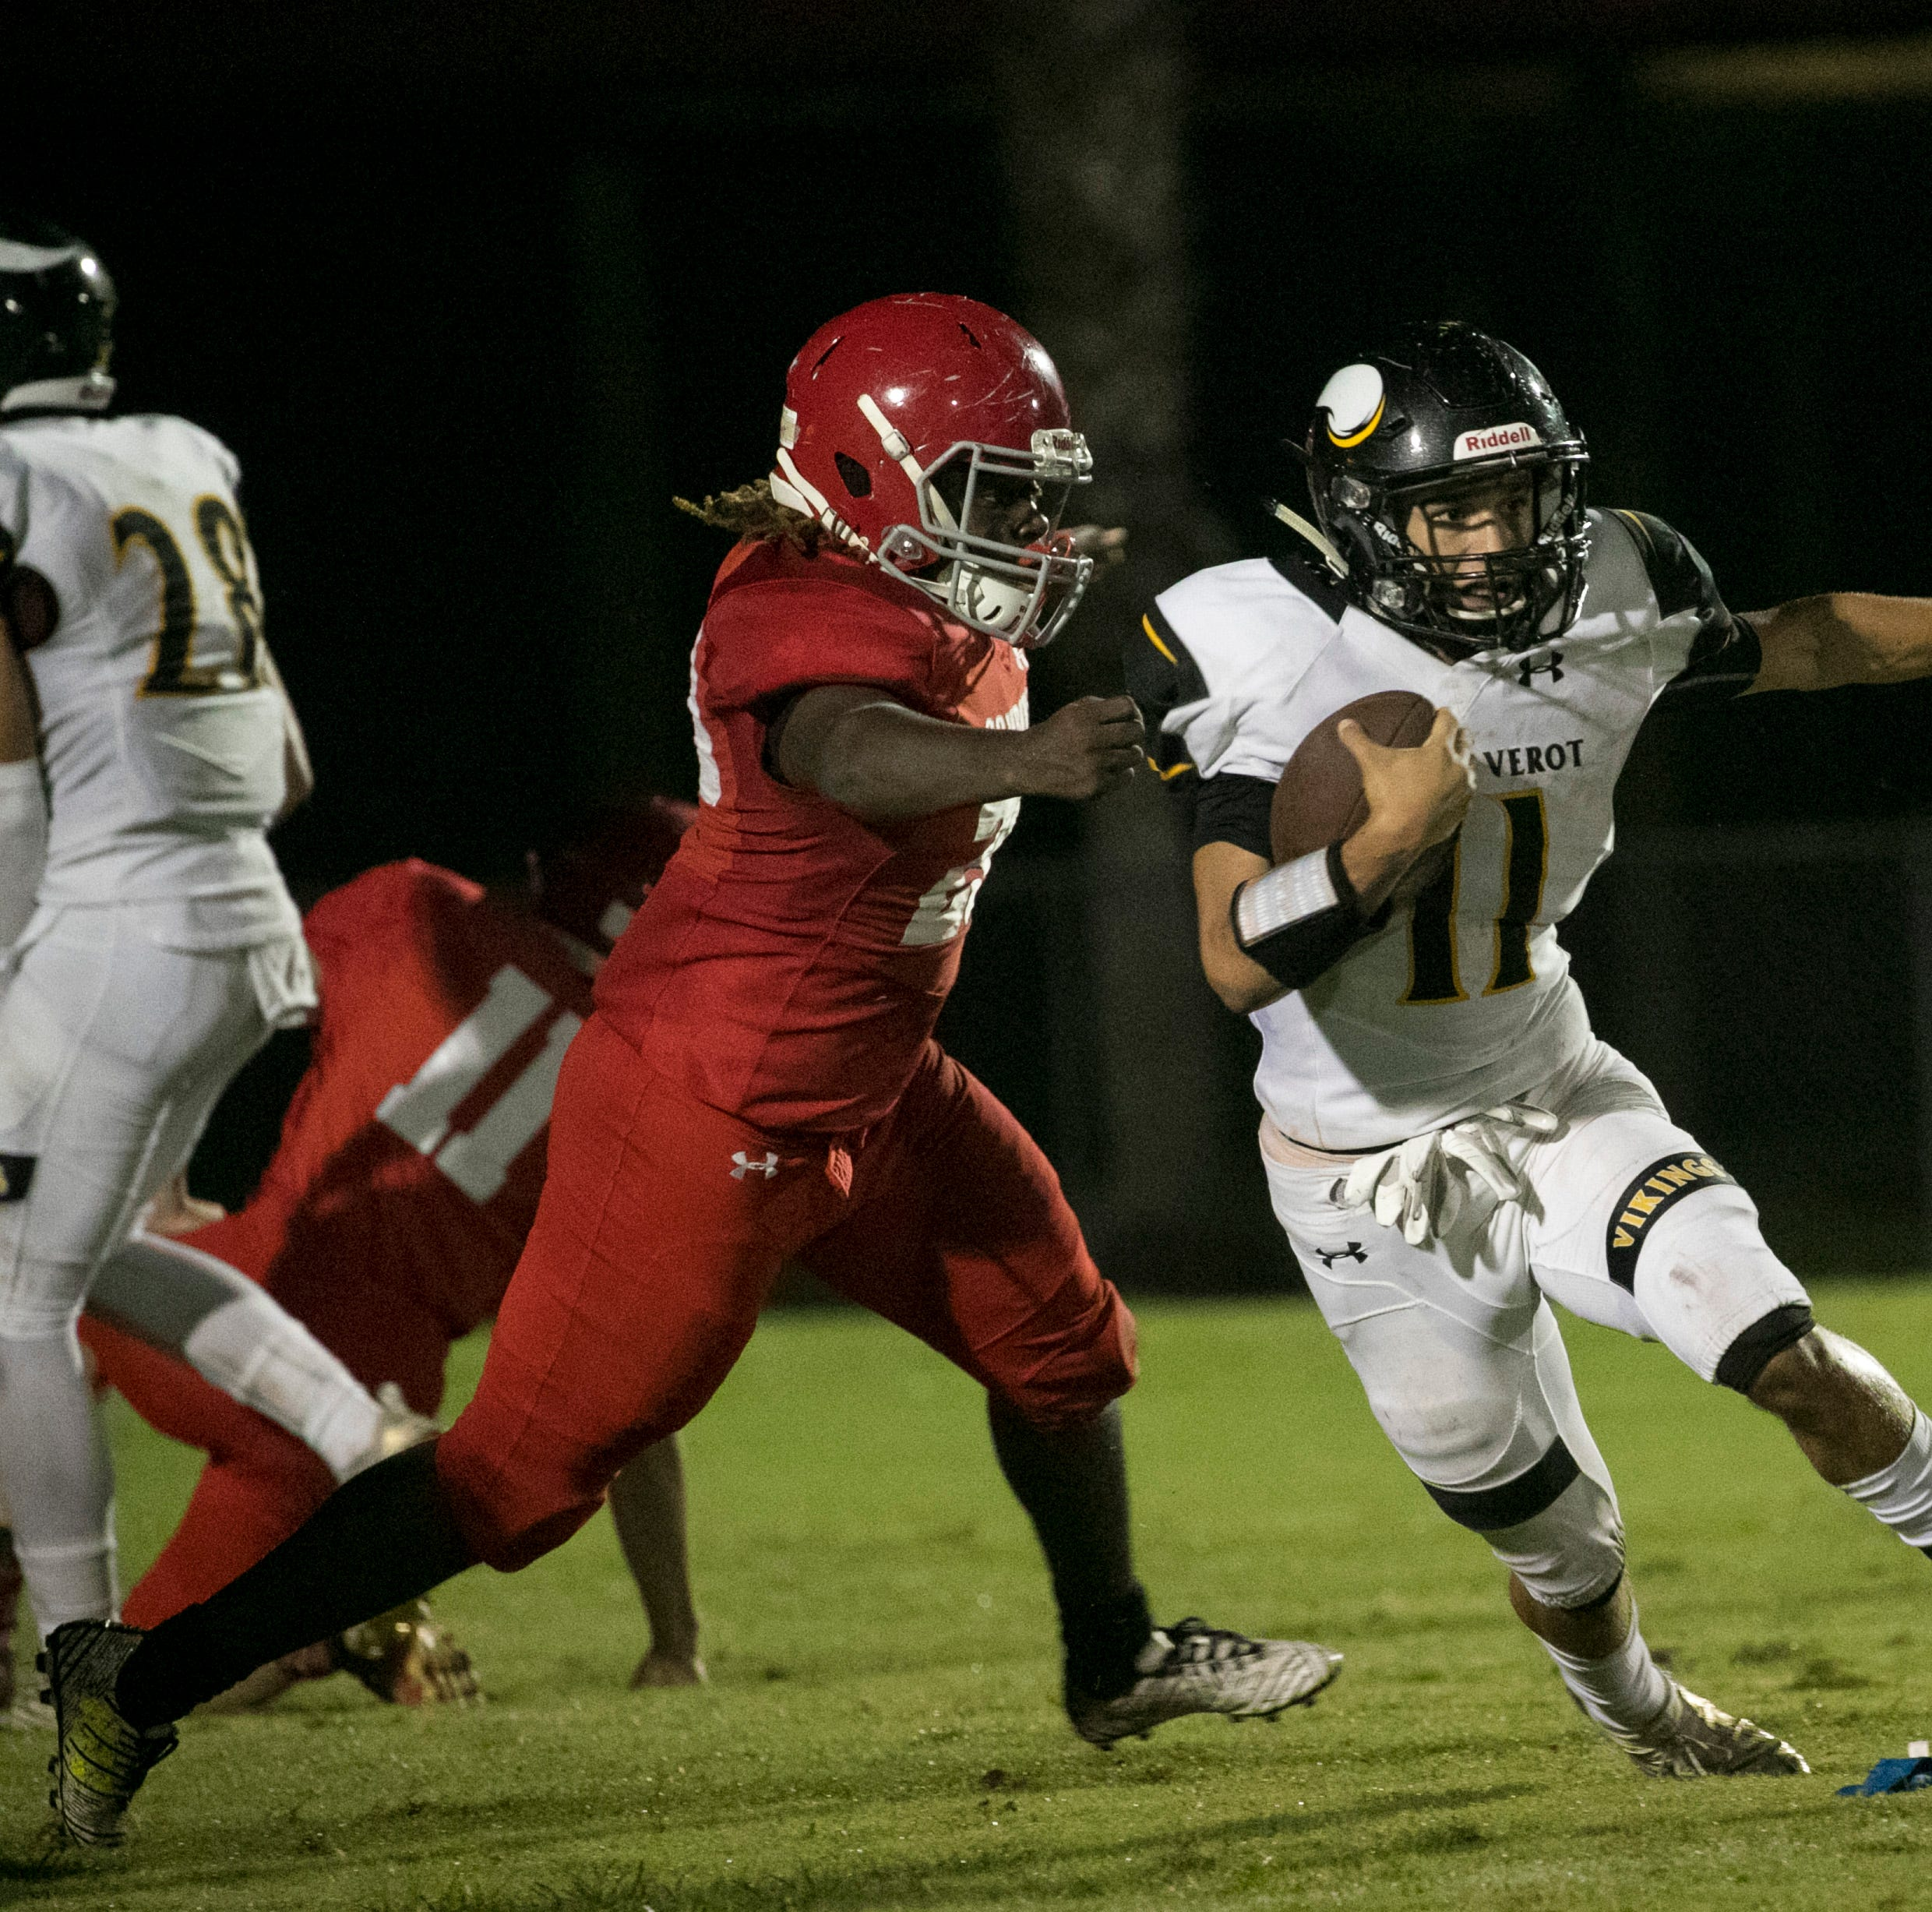 Game of the Week: Bishop Verot beats LaBelle physically, mentally in high school football win